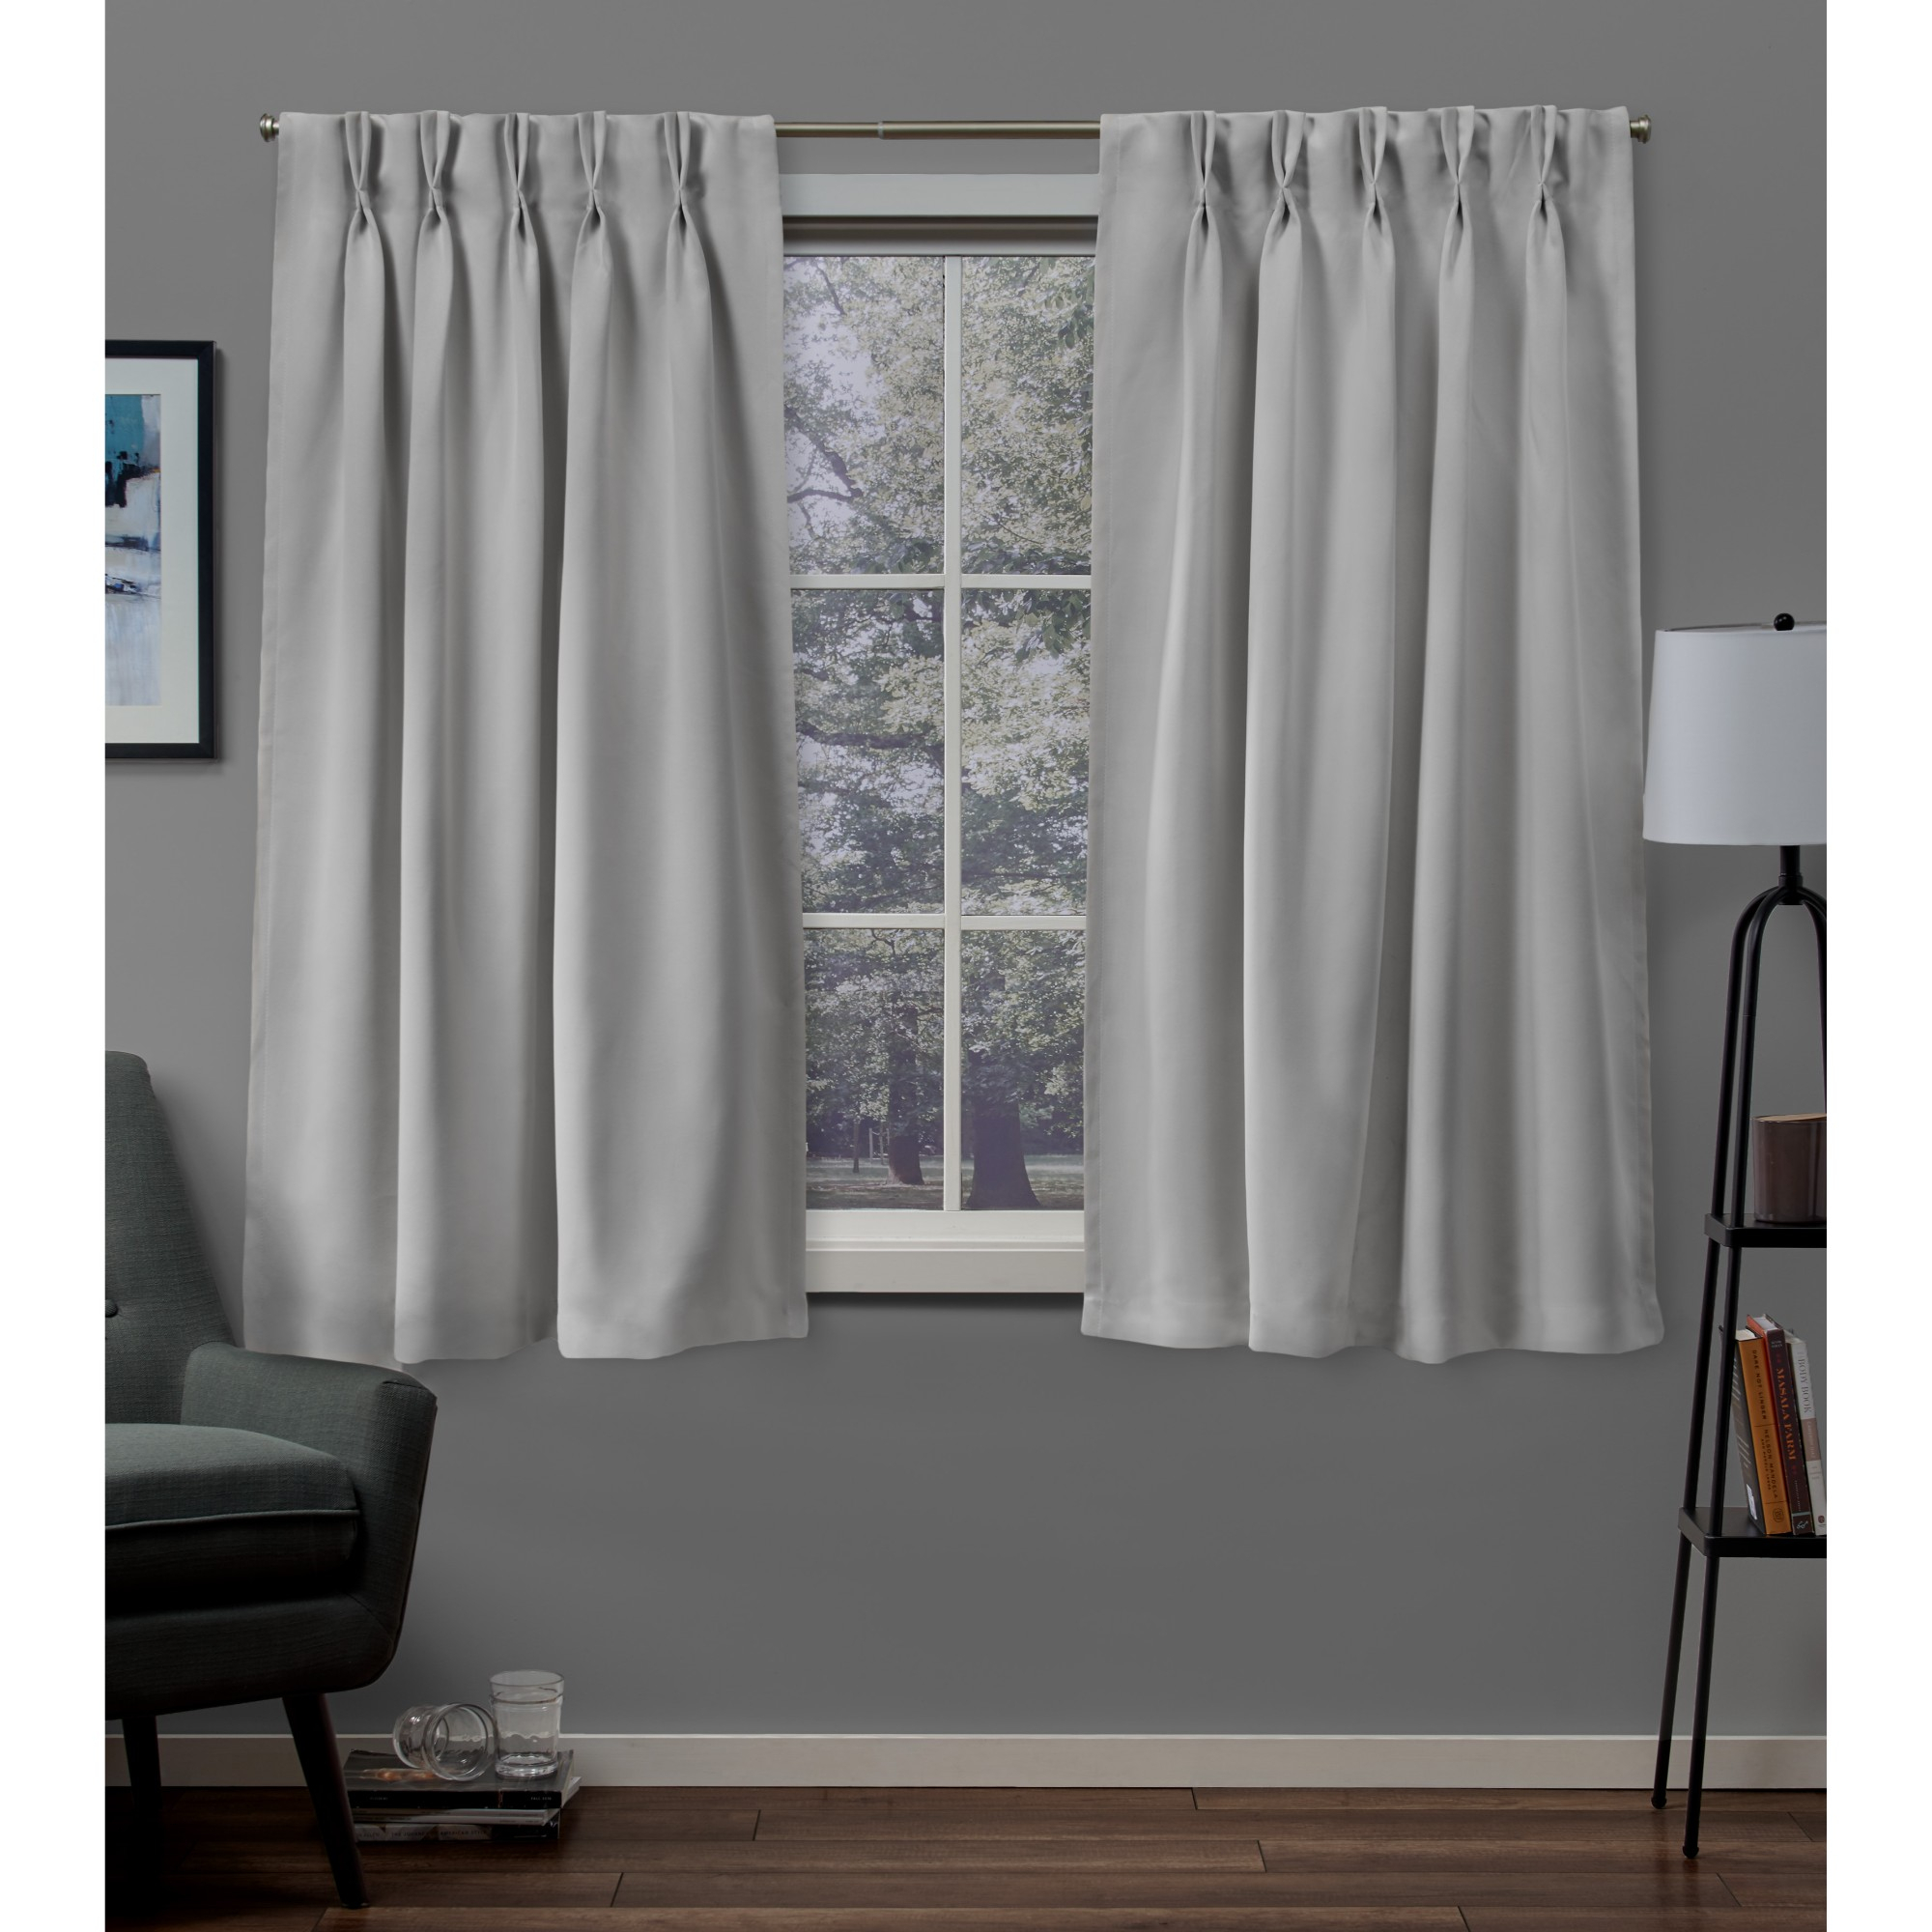 Sateen Woven Blackout Pinch Pleat Window Curtain Panel Pair With Regard To Sateen Woven Blackout Curtain Panel Pairs With Pinch Pleat Top (View 18 of 20)